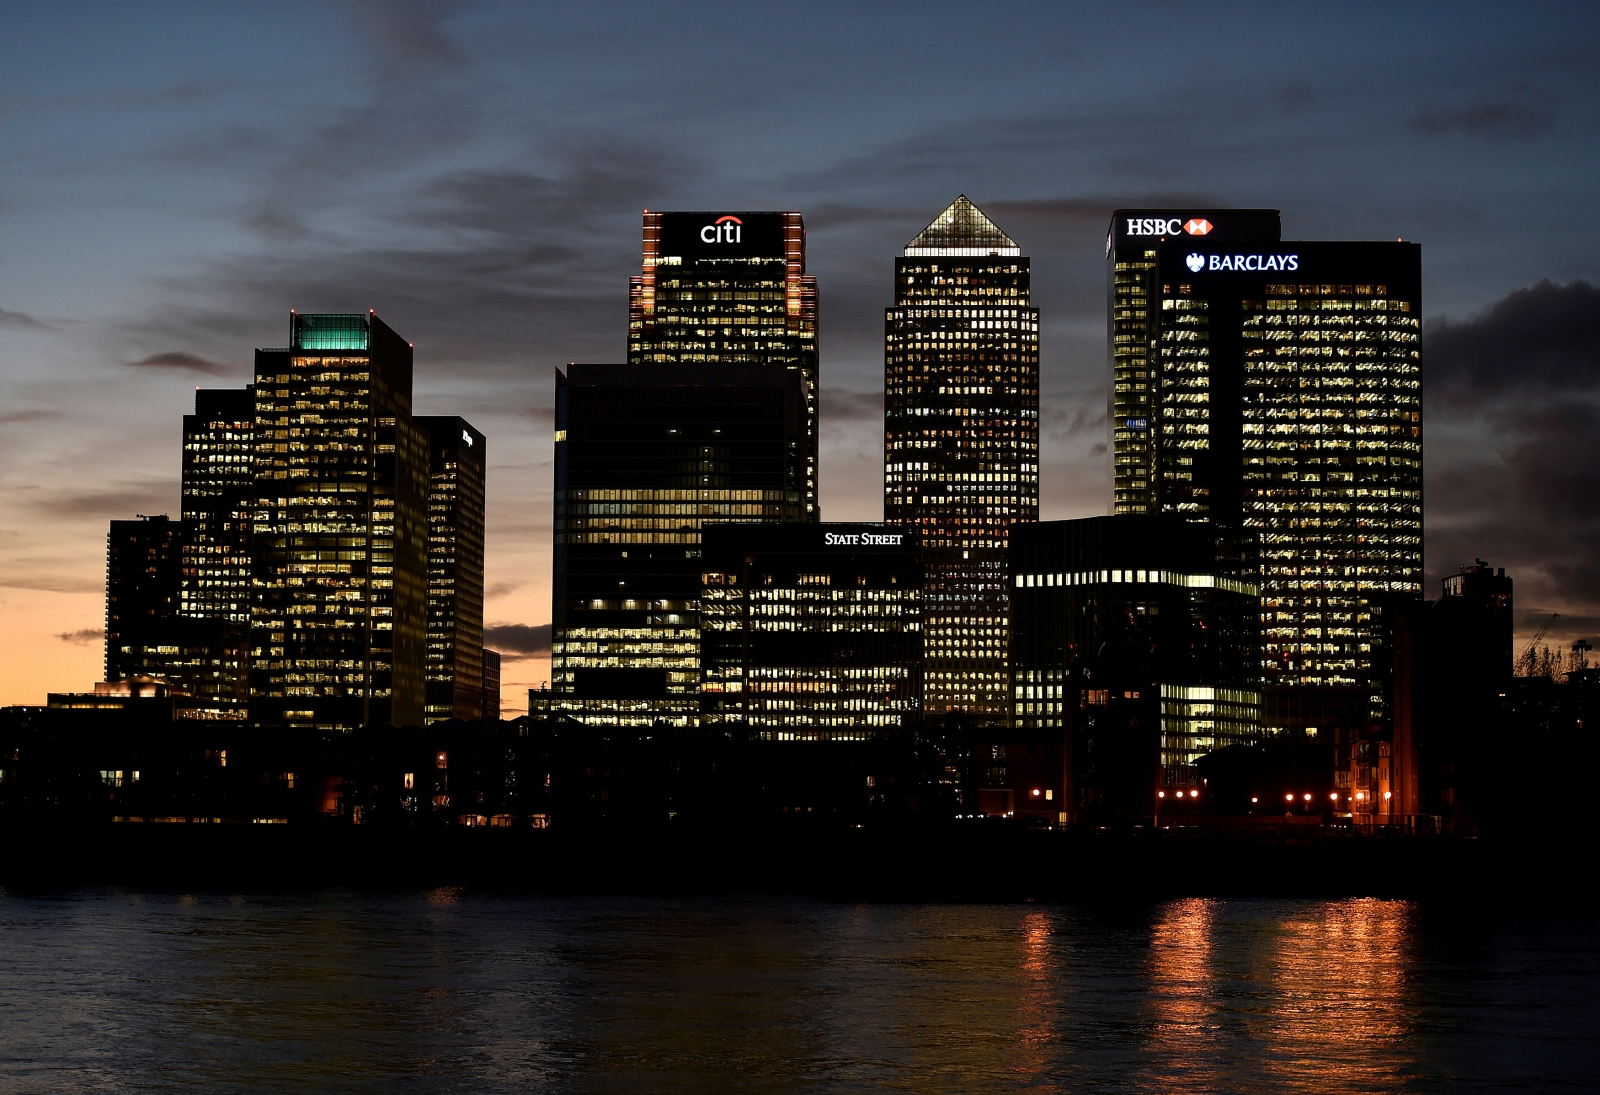 Canary wharf view